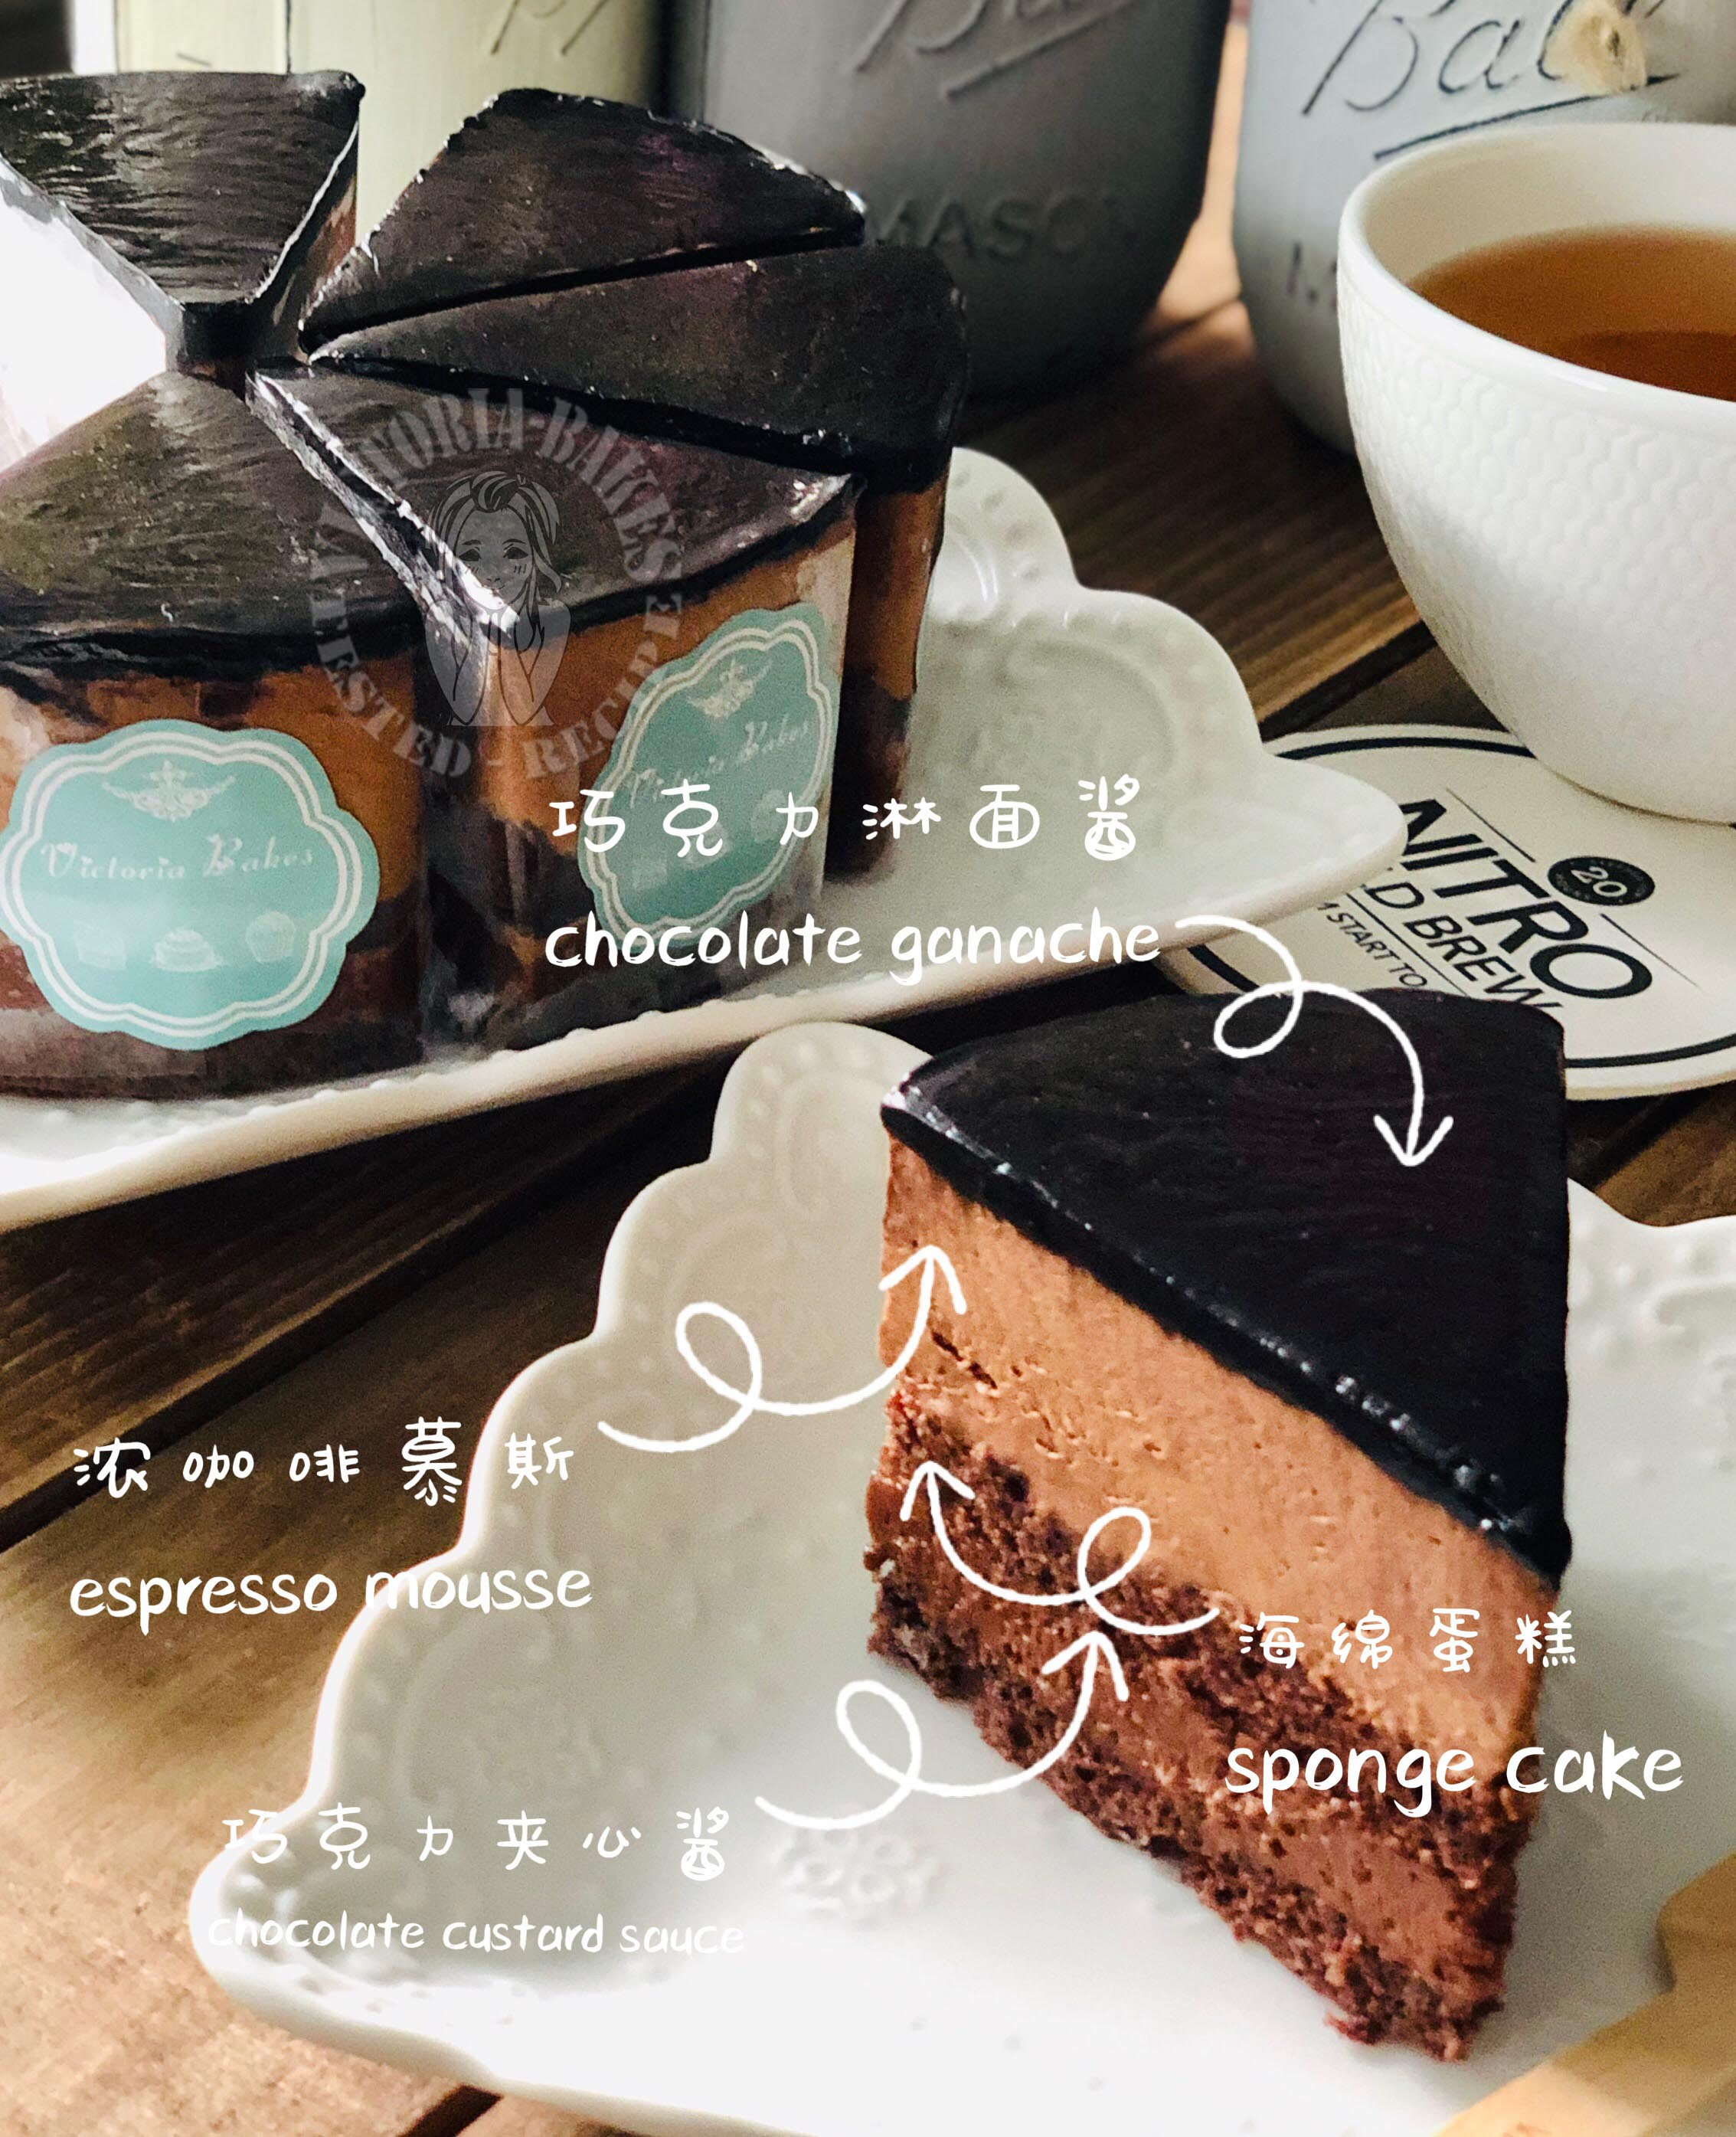 chocolate-espresso mousse cake ~ highly recommended 巧克力浓咖啡慕斯蛋糕 ~ 强推